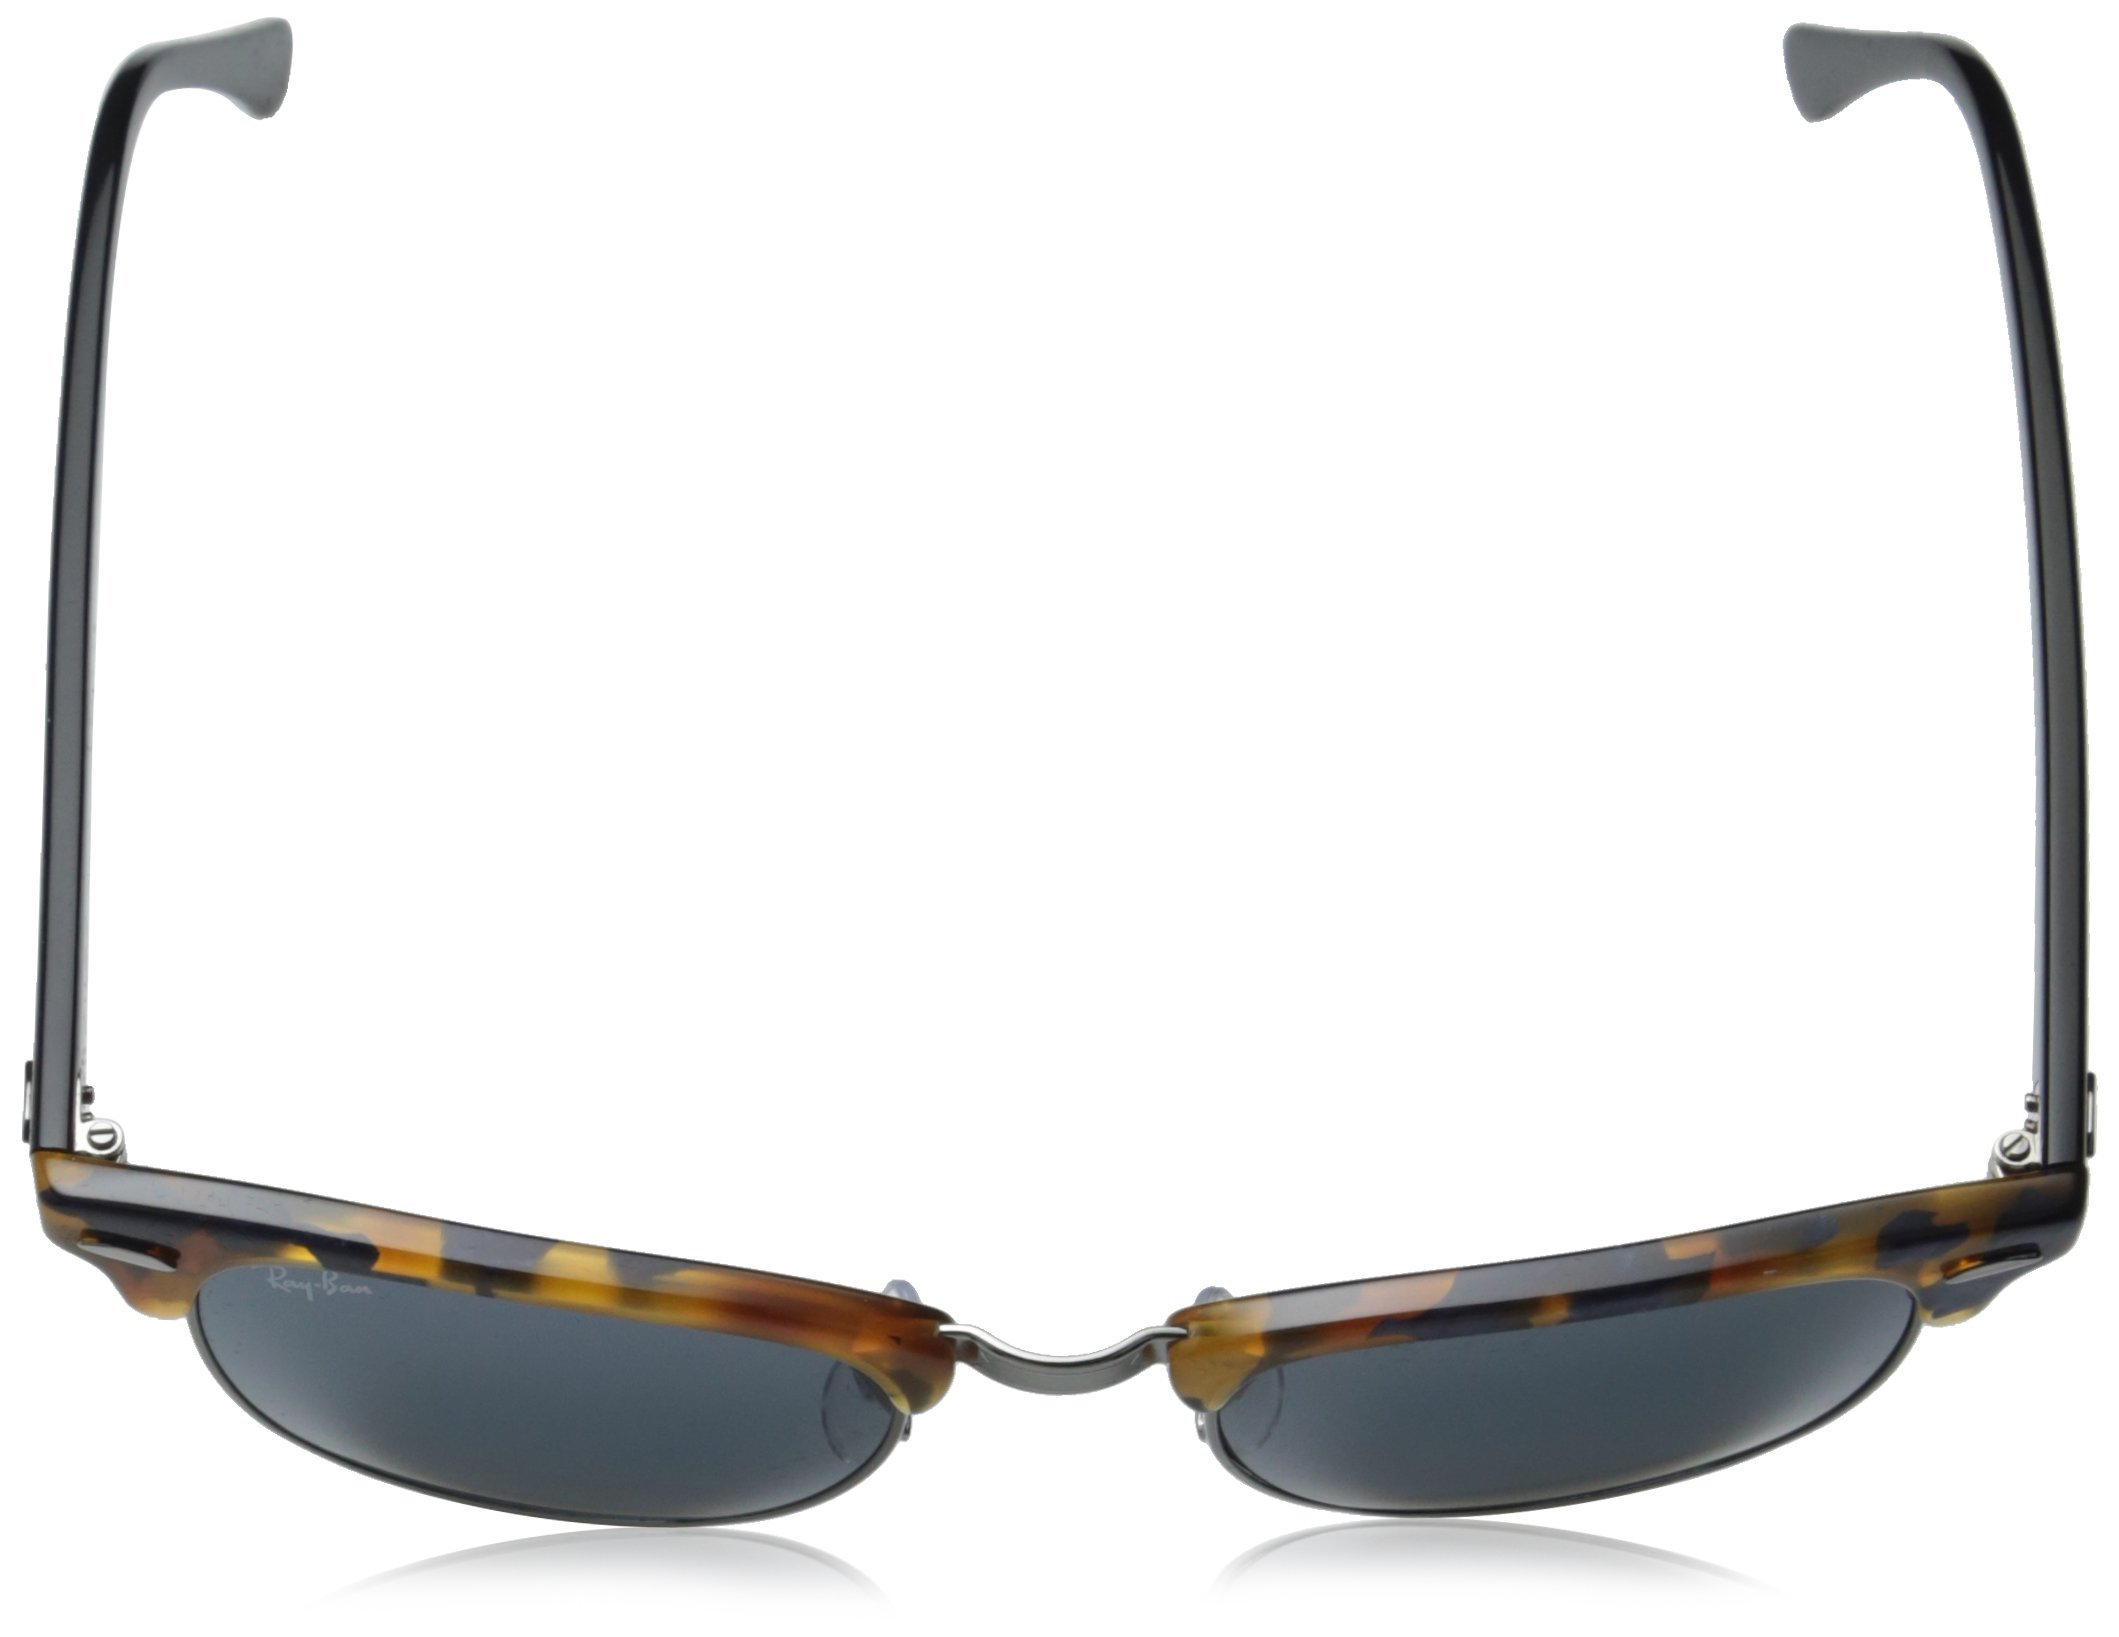 Ray-Ban CLUBMASTER - SPOTTED BLUE HAVANA Frame GREY Lenses 49mm Non-Polarized by Ray-Ban (Image #4)